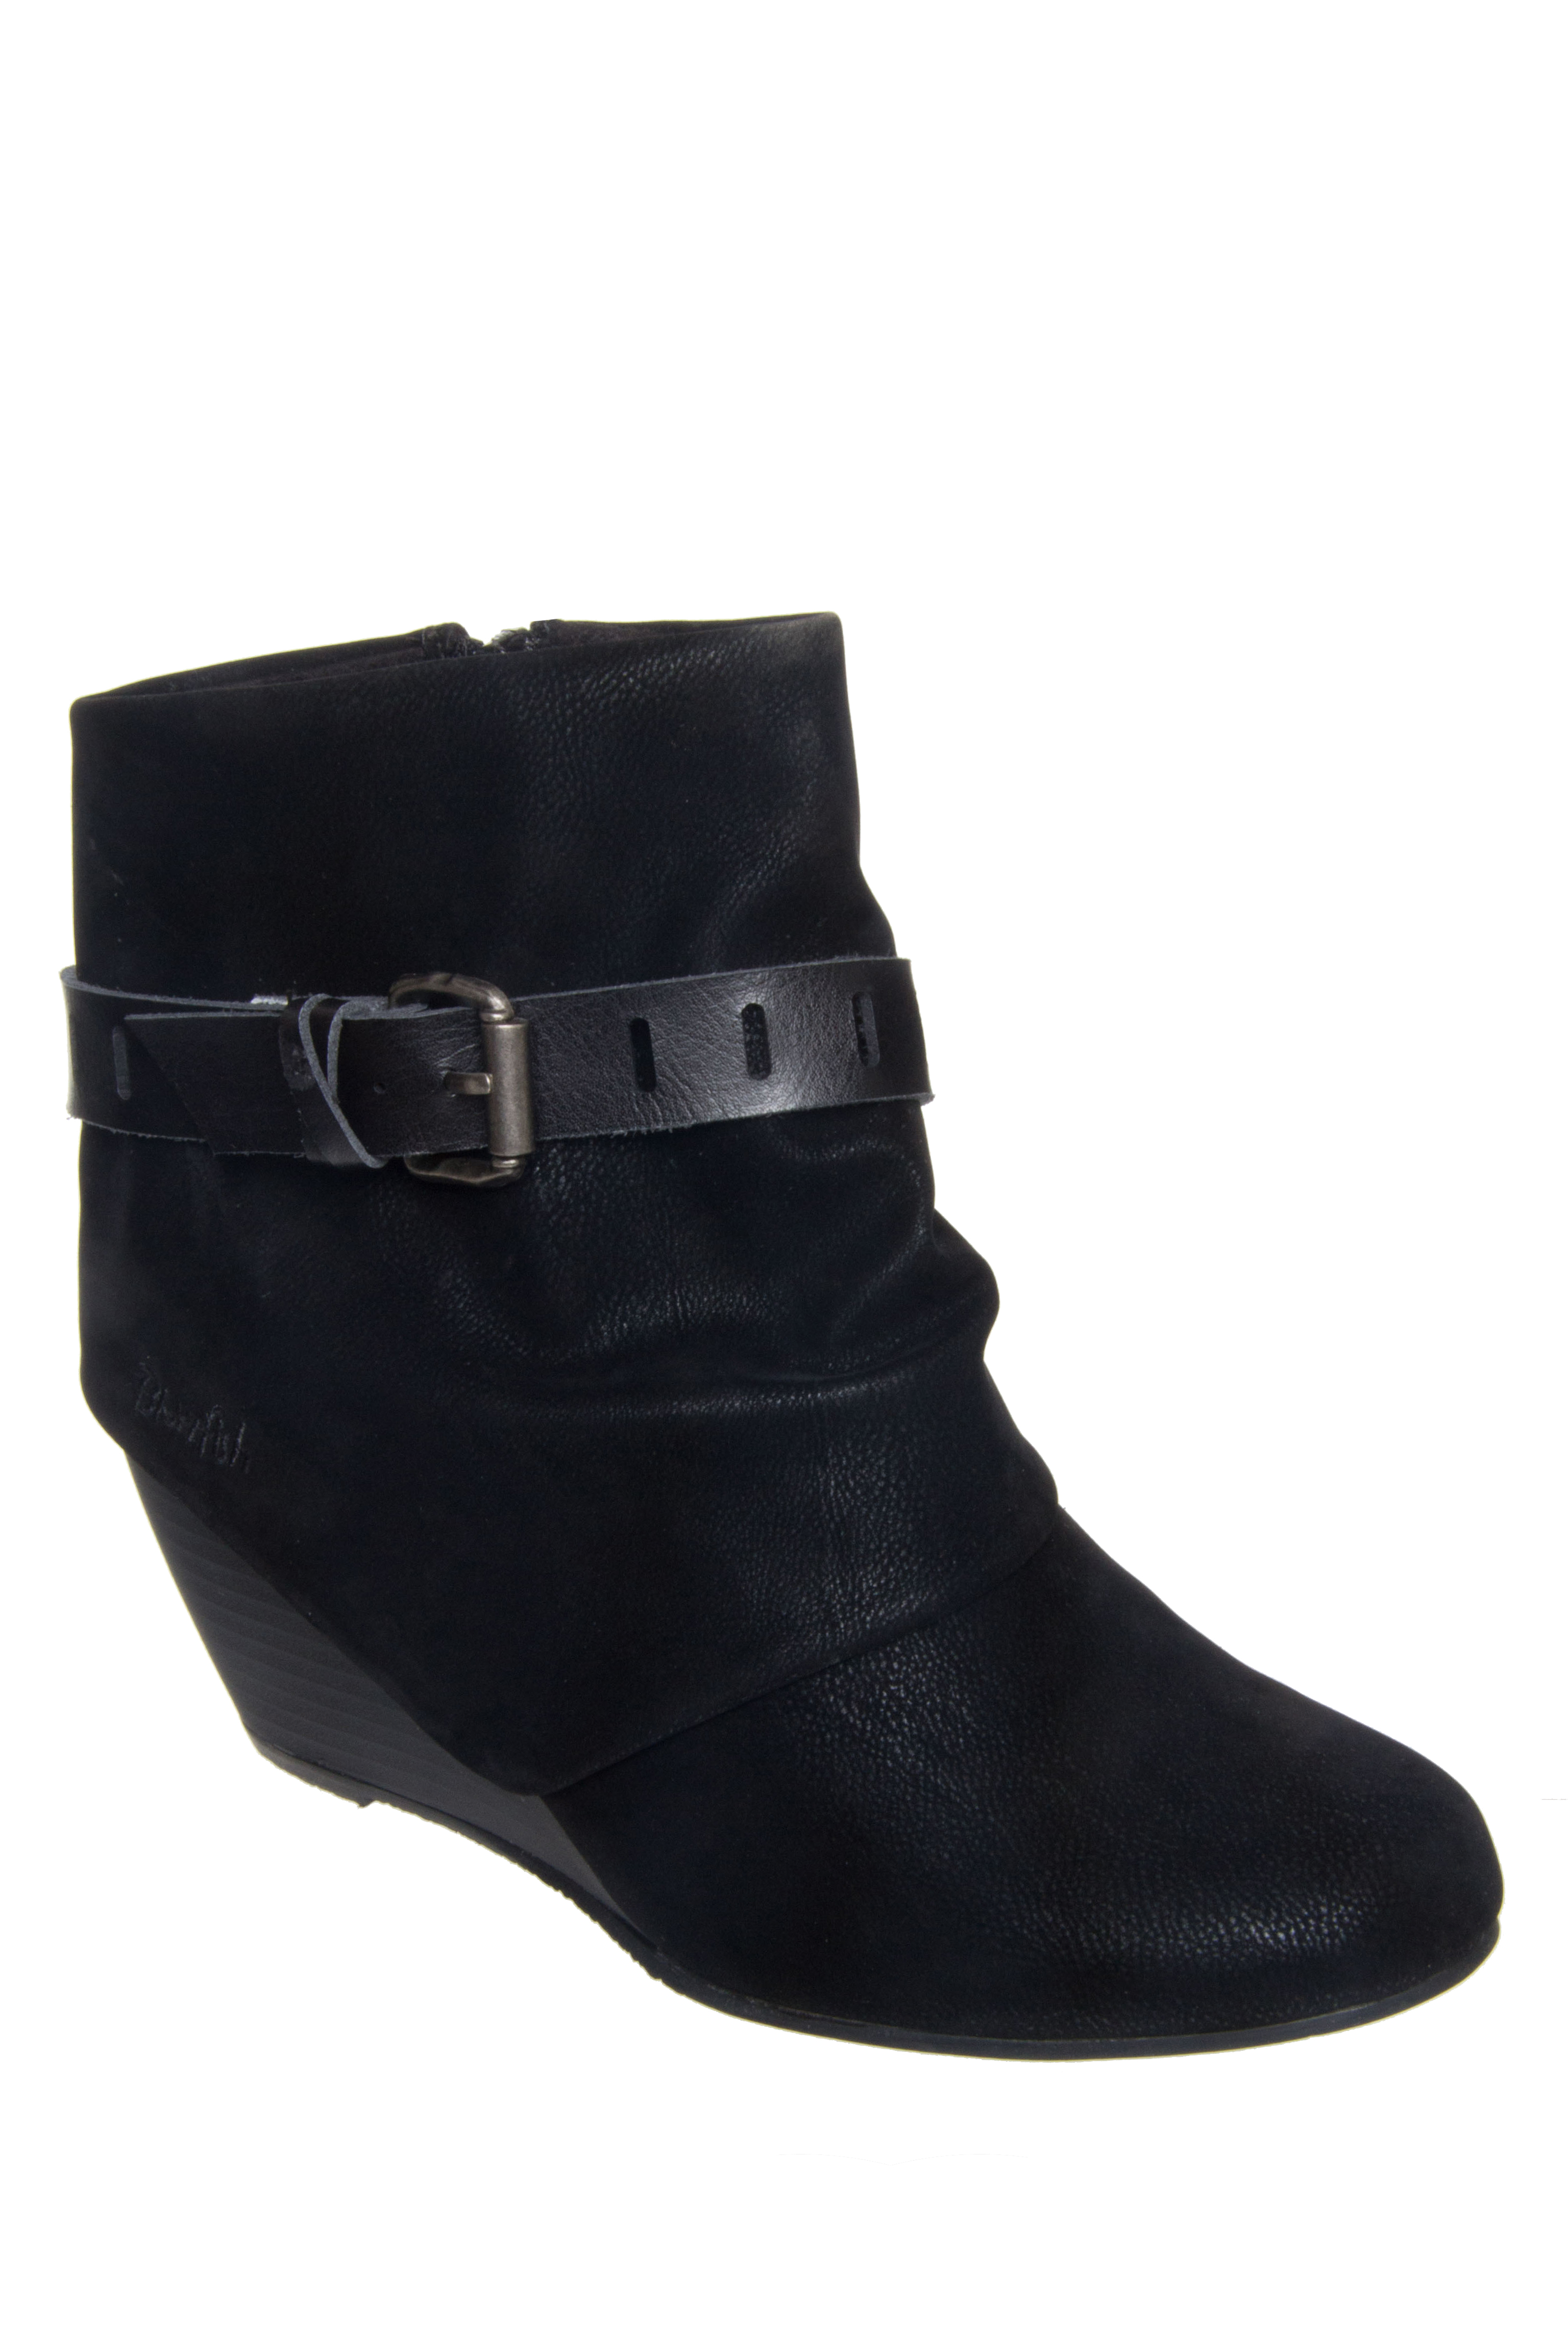 Blowfish Beryl Mid Wedge Booties - Black